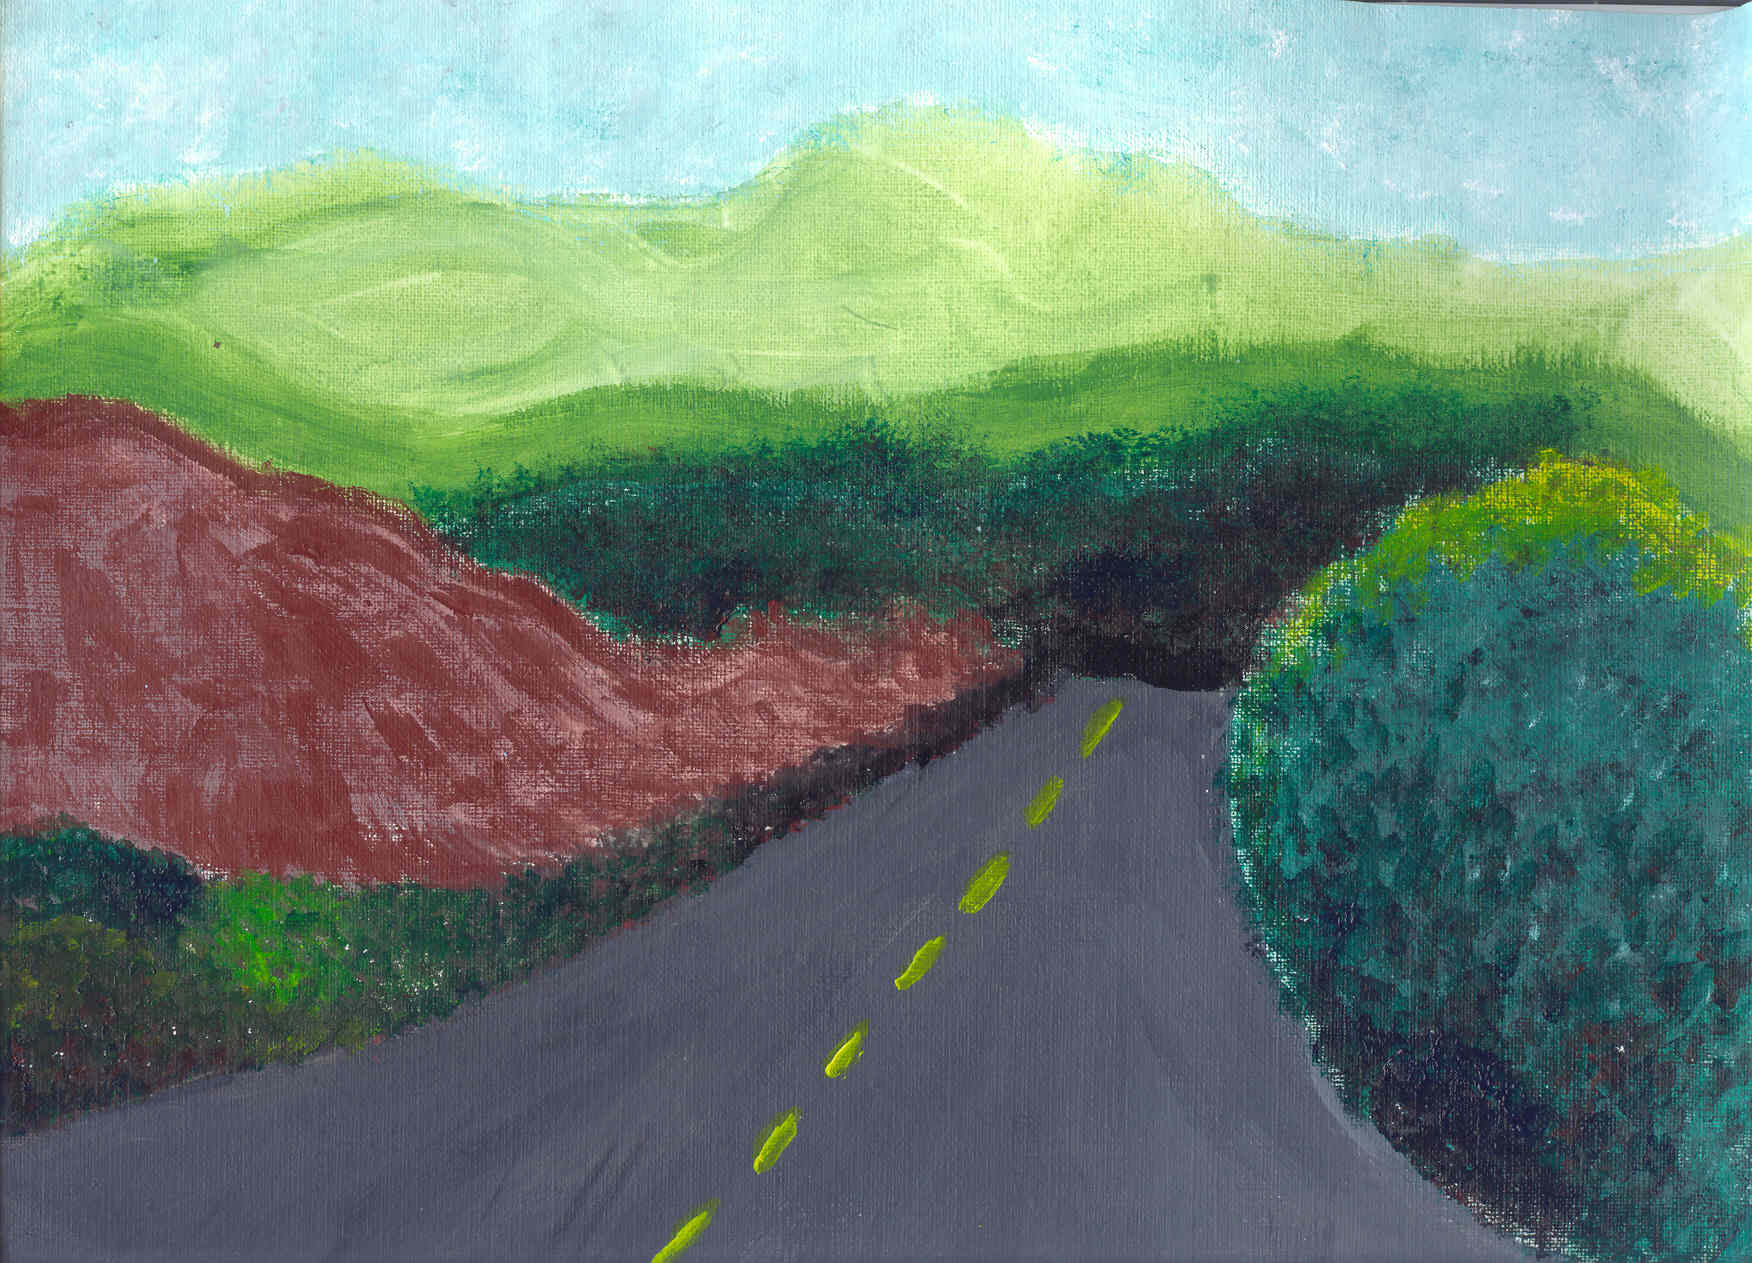 The End of the Road-2005 Copyright Yolanda Berry